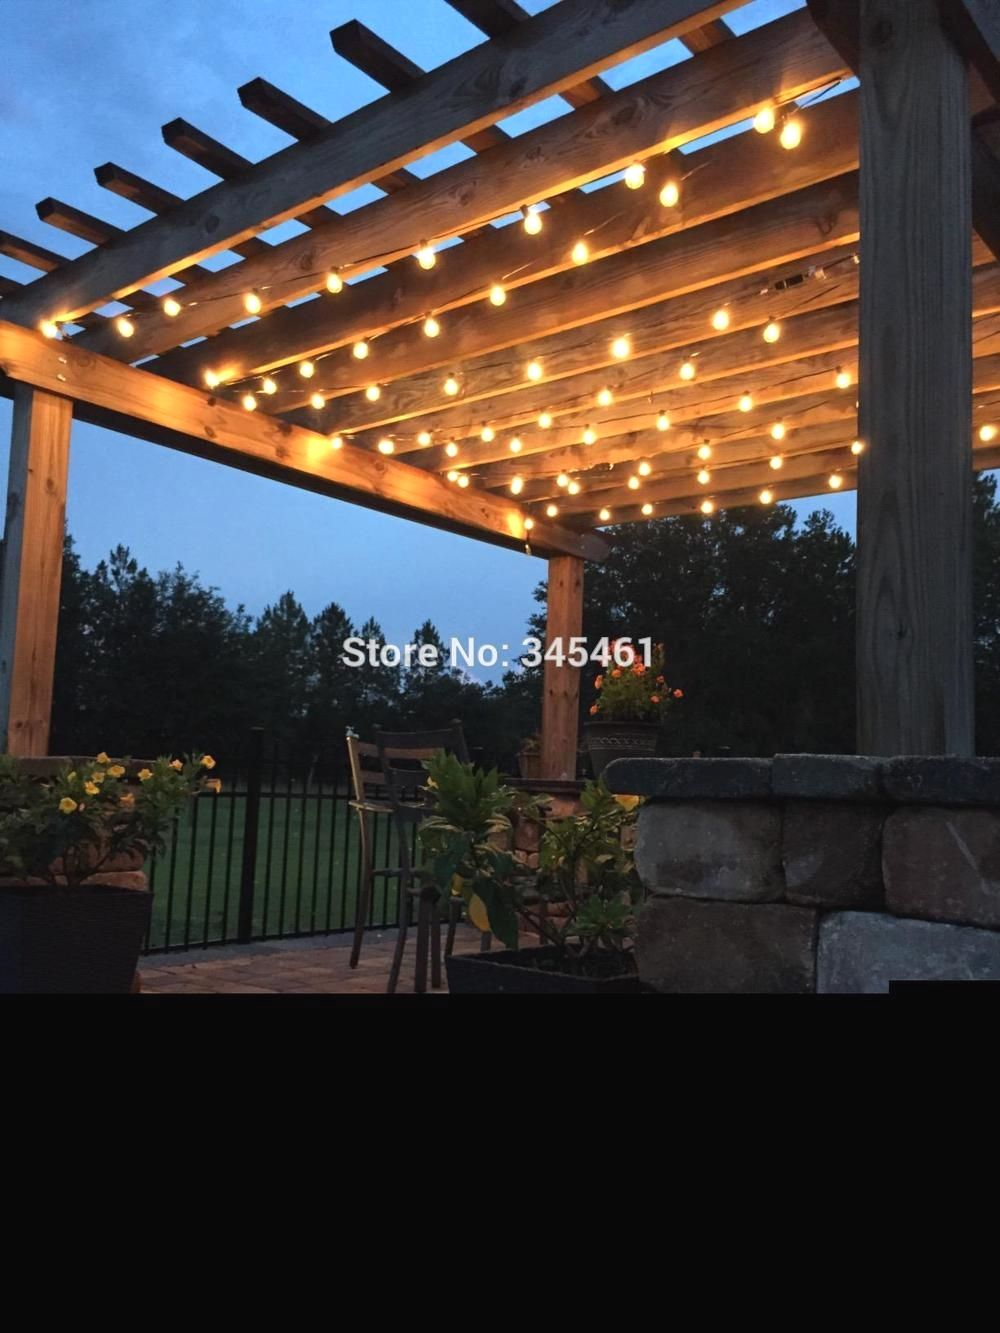 110 Creative Patio Lighting Ideas You Can Create Yourself To Add Beauty To Your Patios Pergola Patio Diy Outdoor Lighting Pergola Lighting Outdoor Lighting